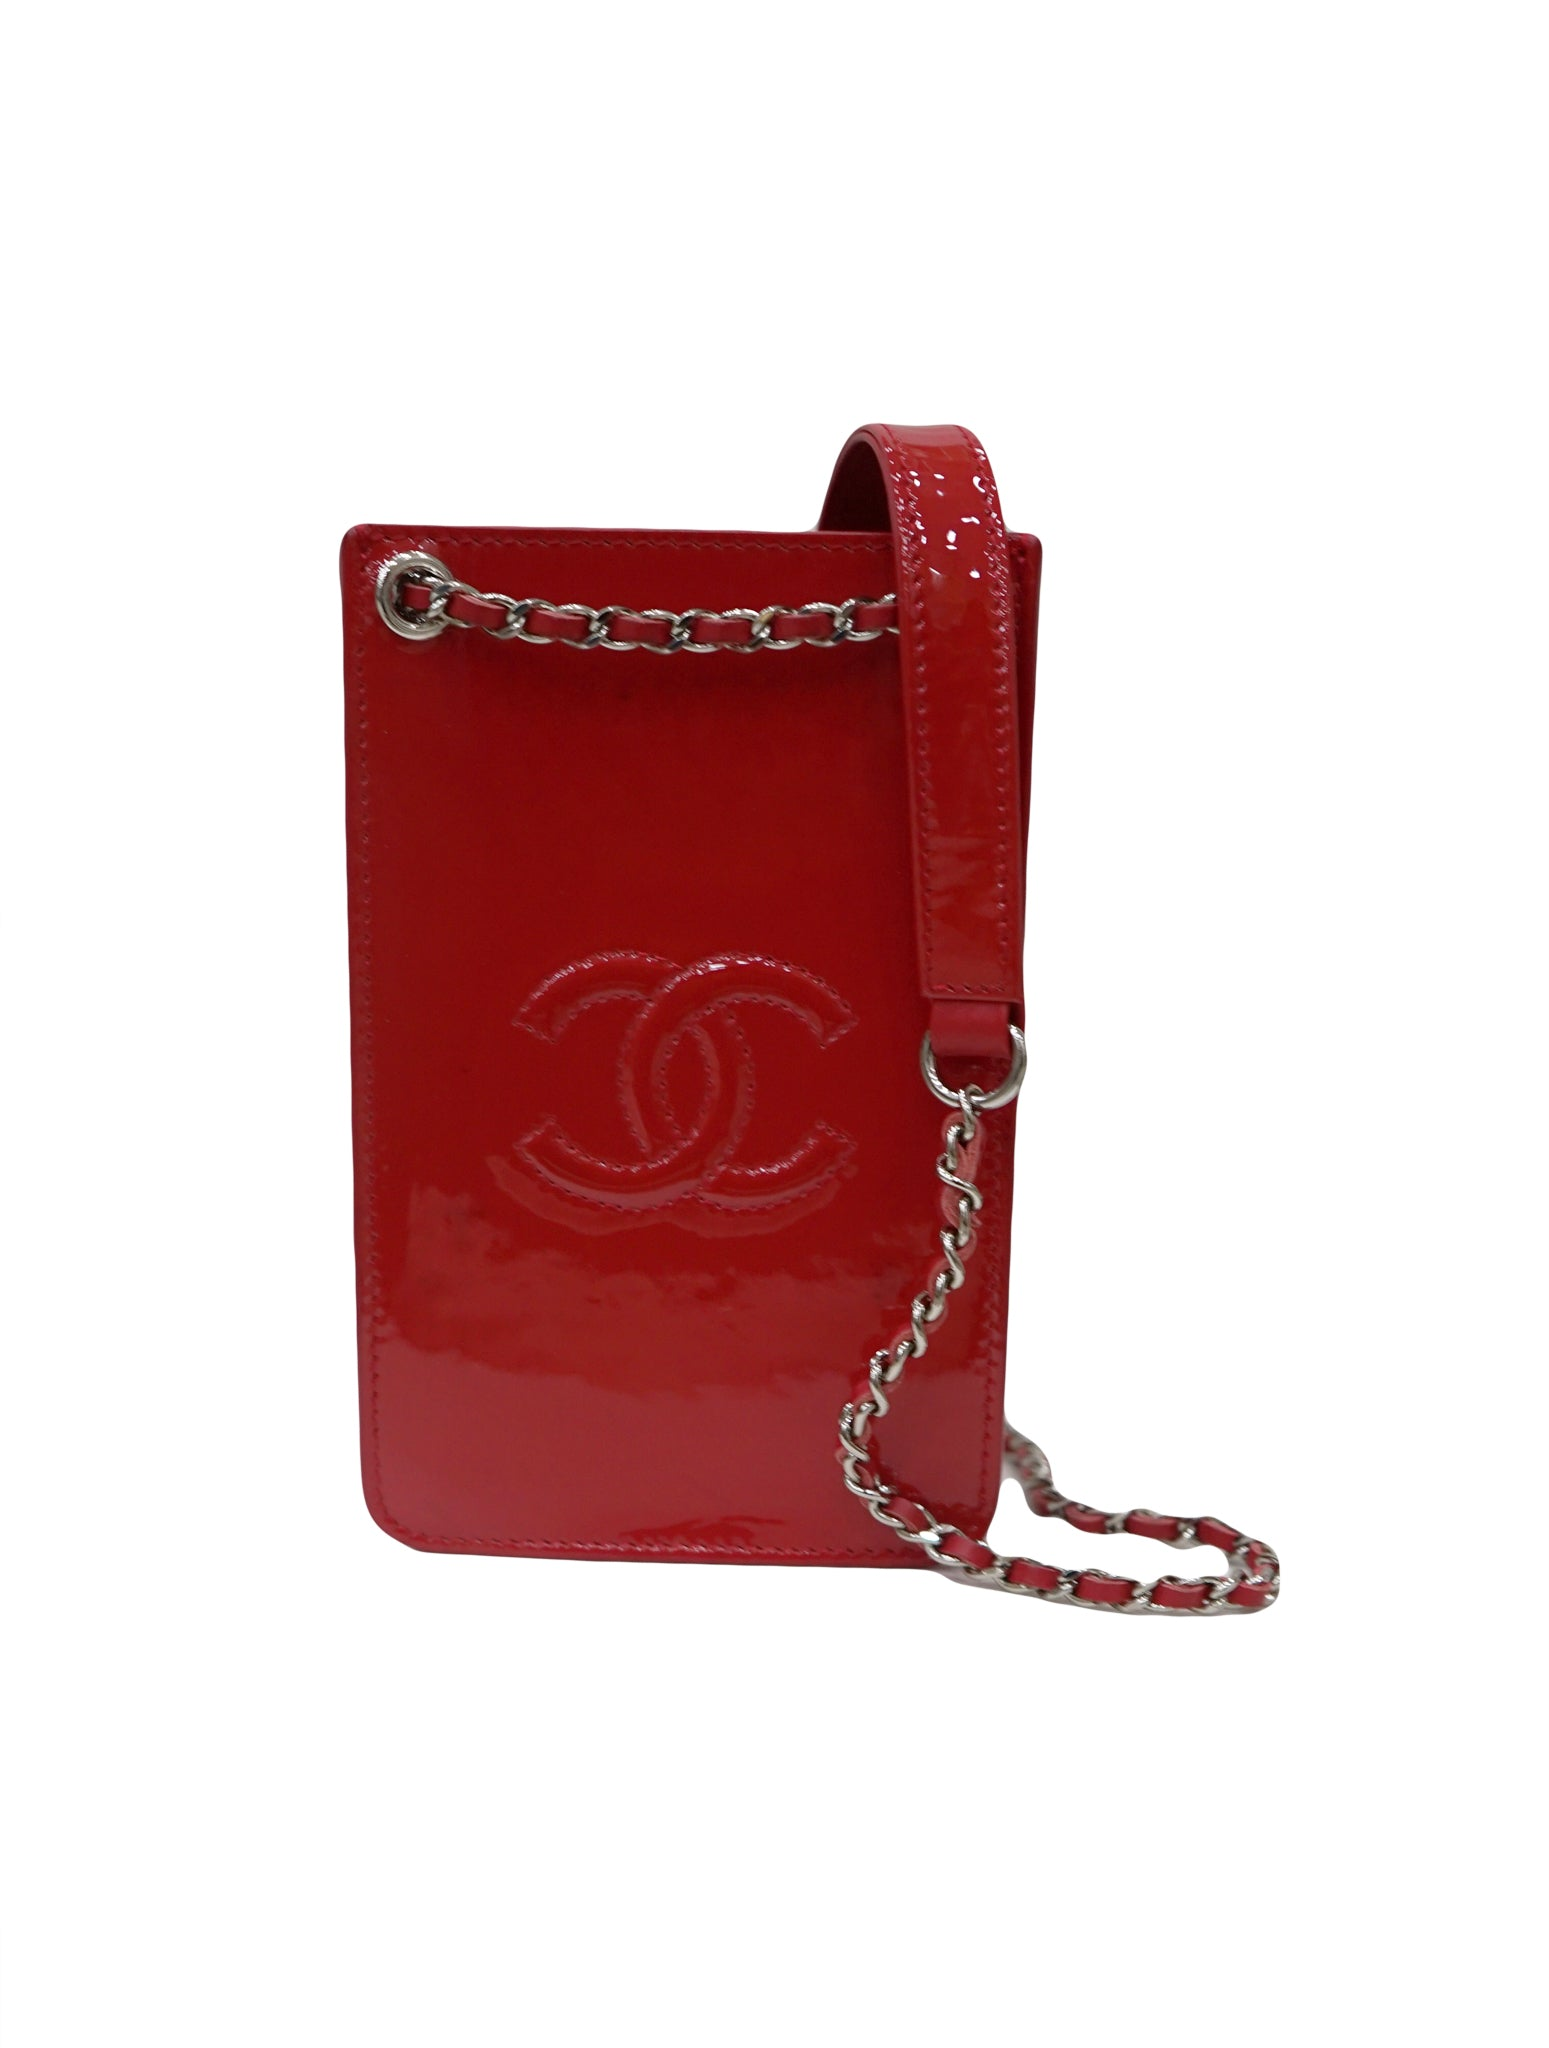 RED PATENT LEATHER CHAIN PHONE HOLDER